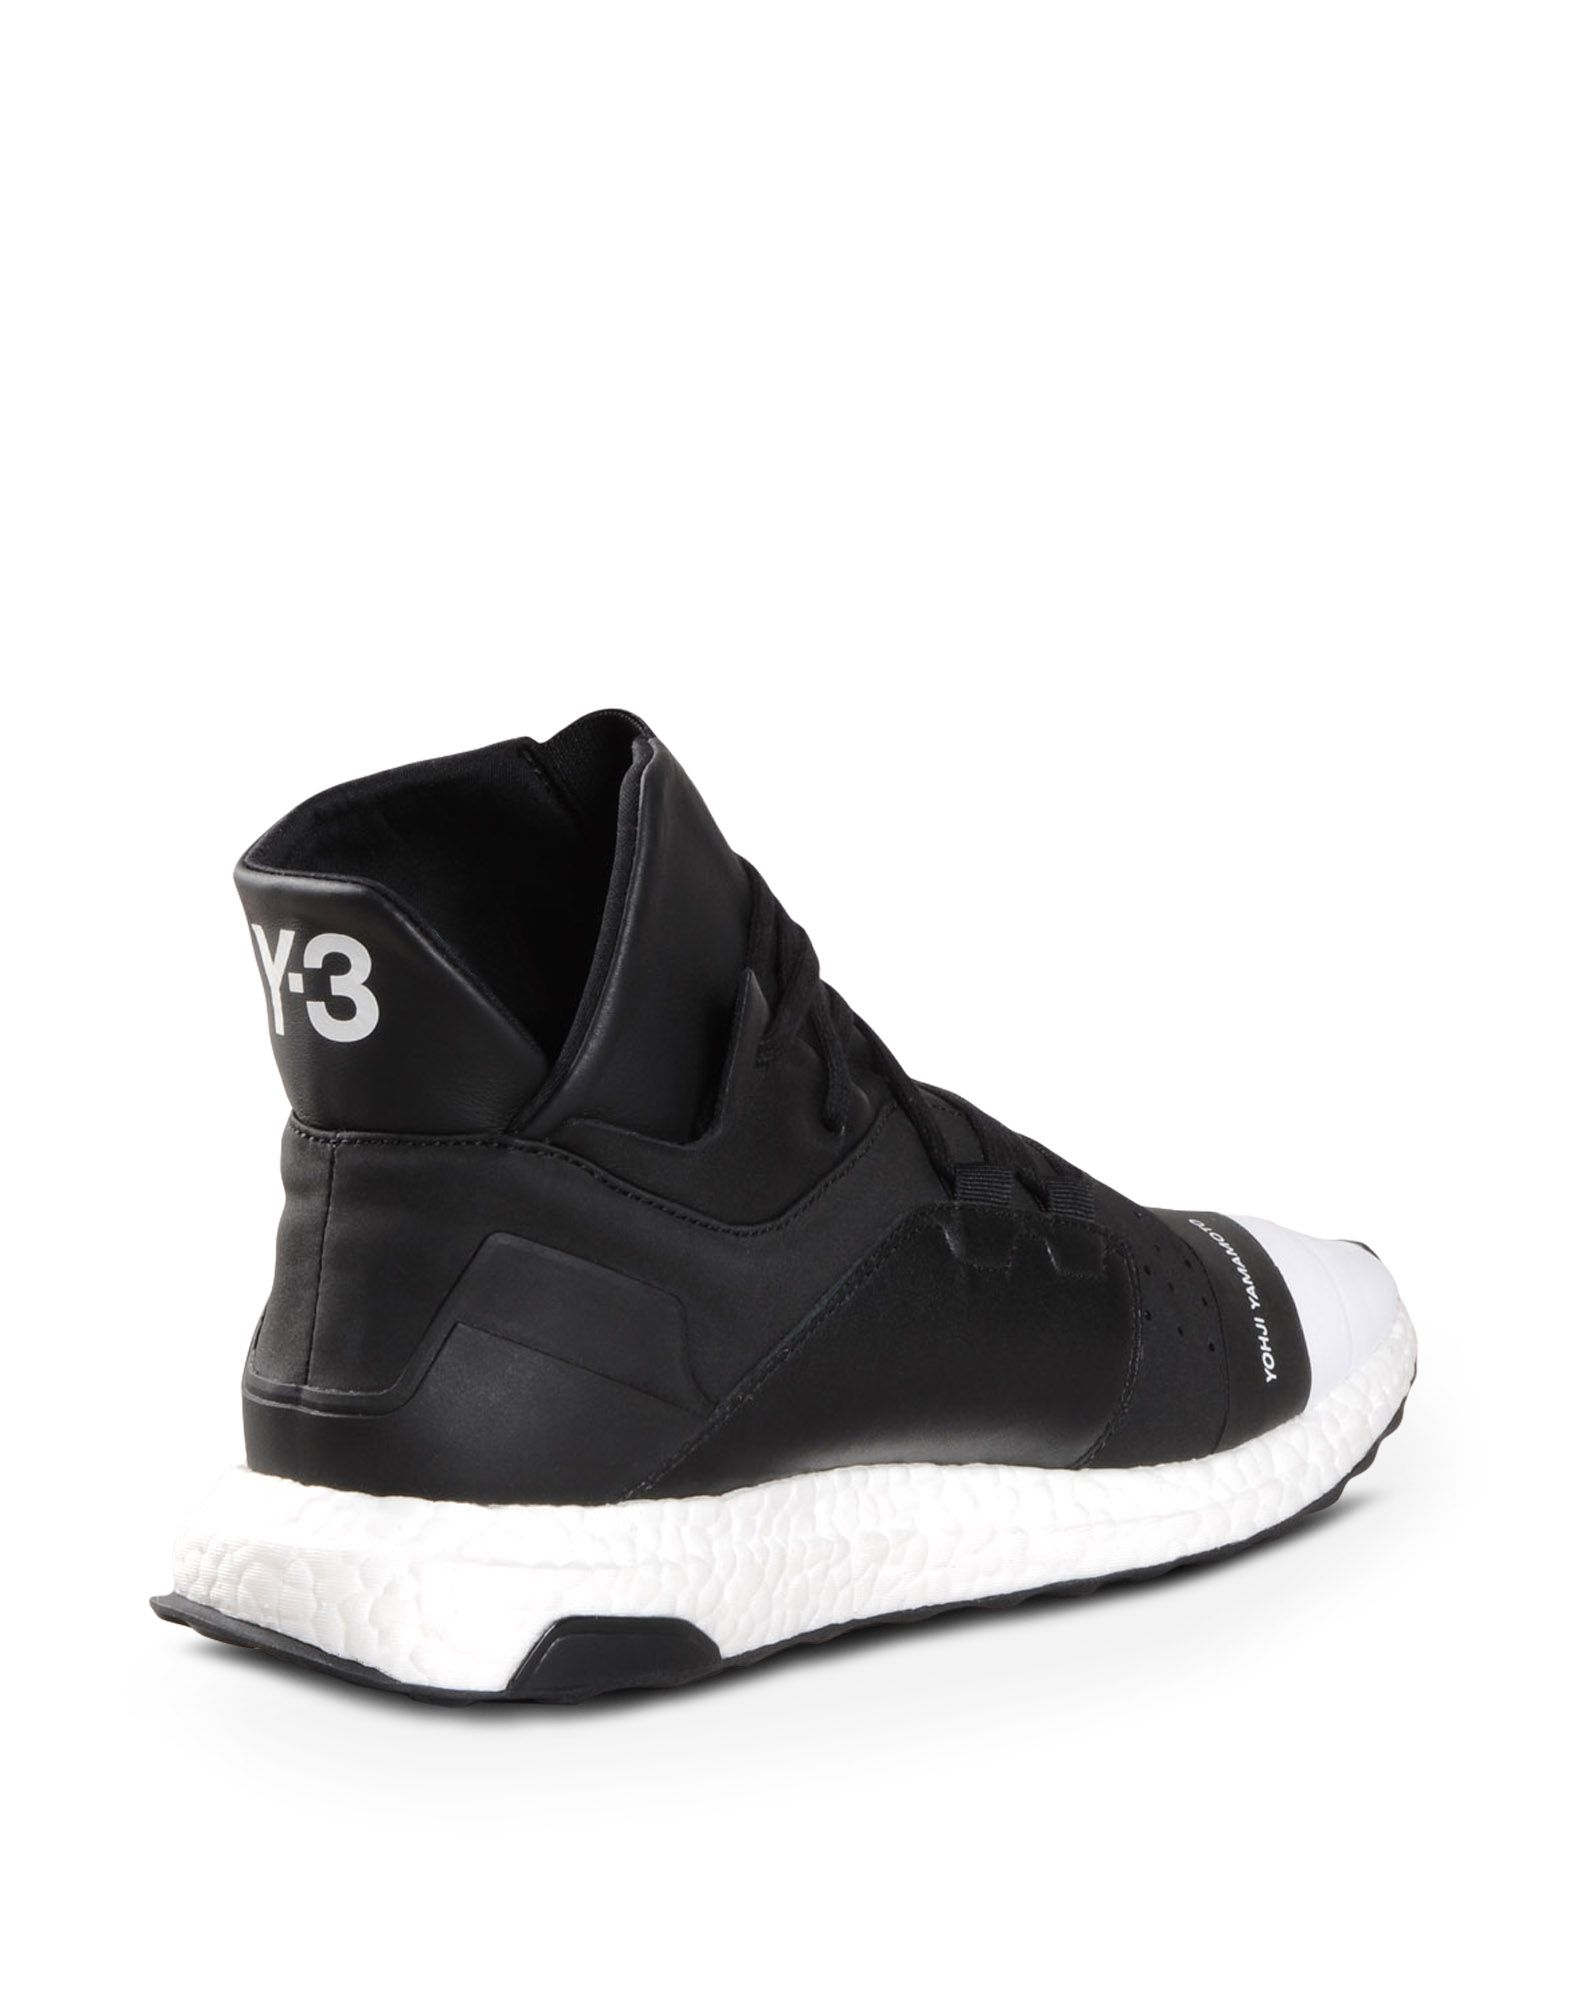 ... Y-3 Y-3 KOZOKO HIGH High-top sneakers Man d ... 0cbc21f3d410